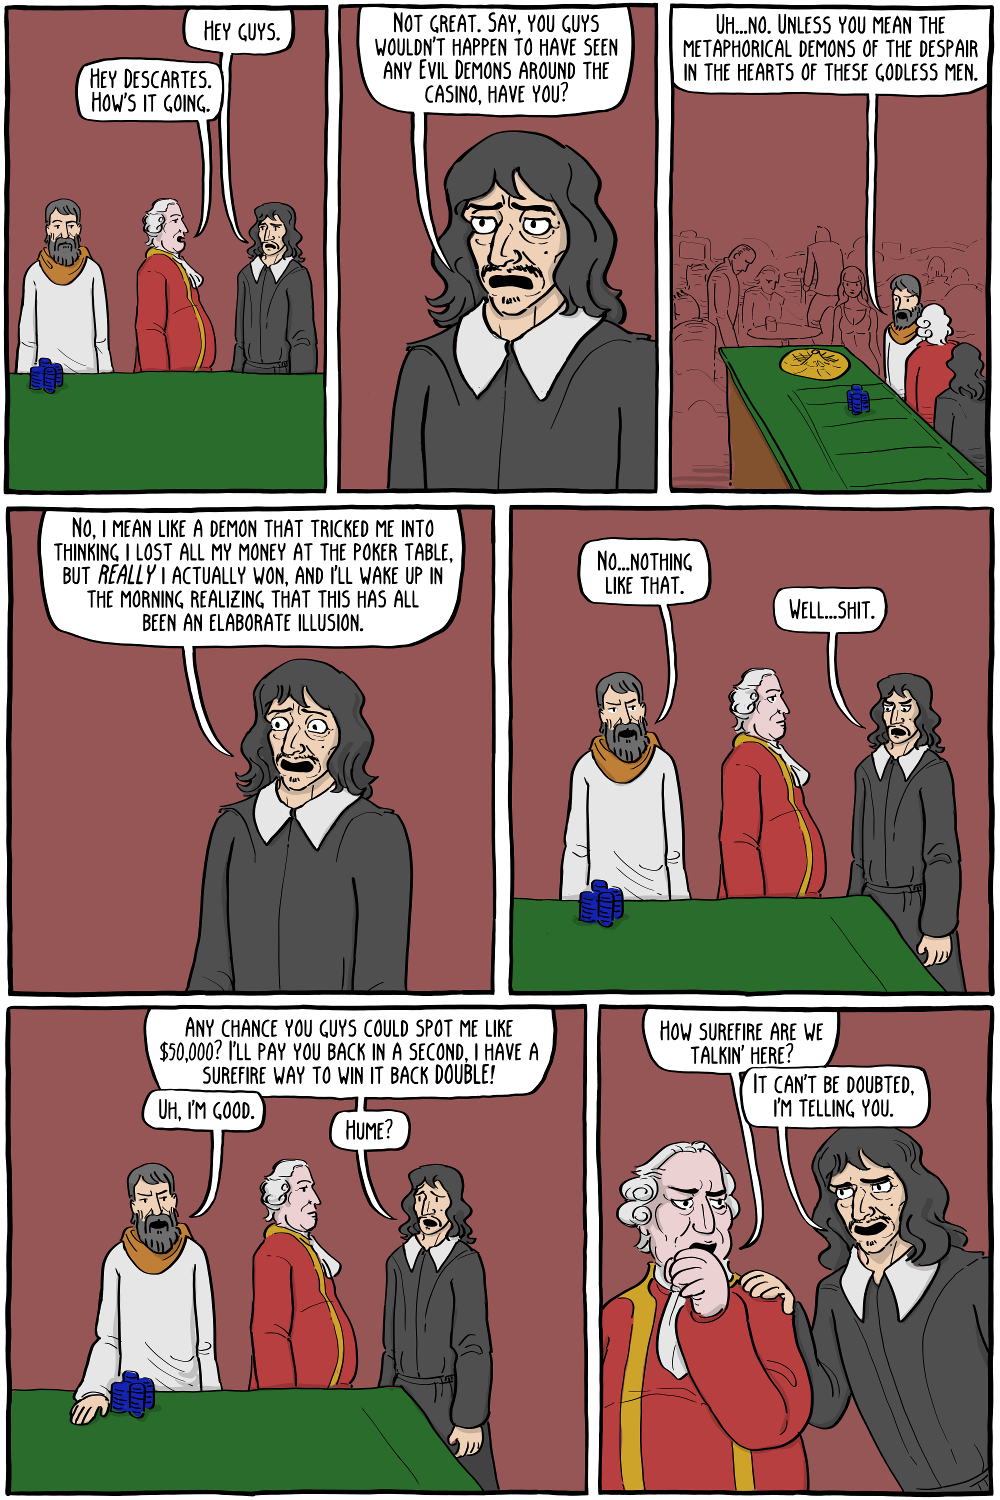 Hume had been burned by Descartes before, but he figured that was no reason not to trust him now...